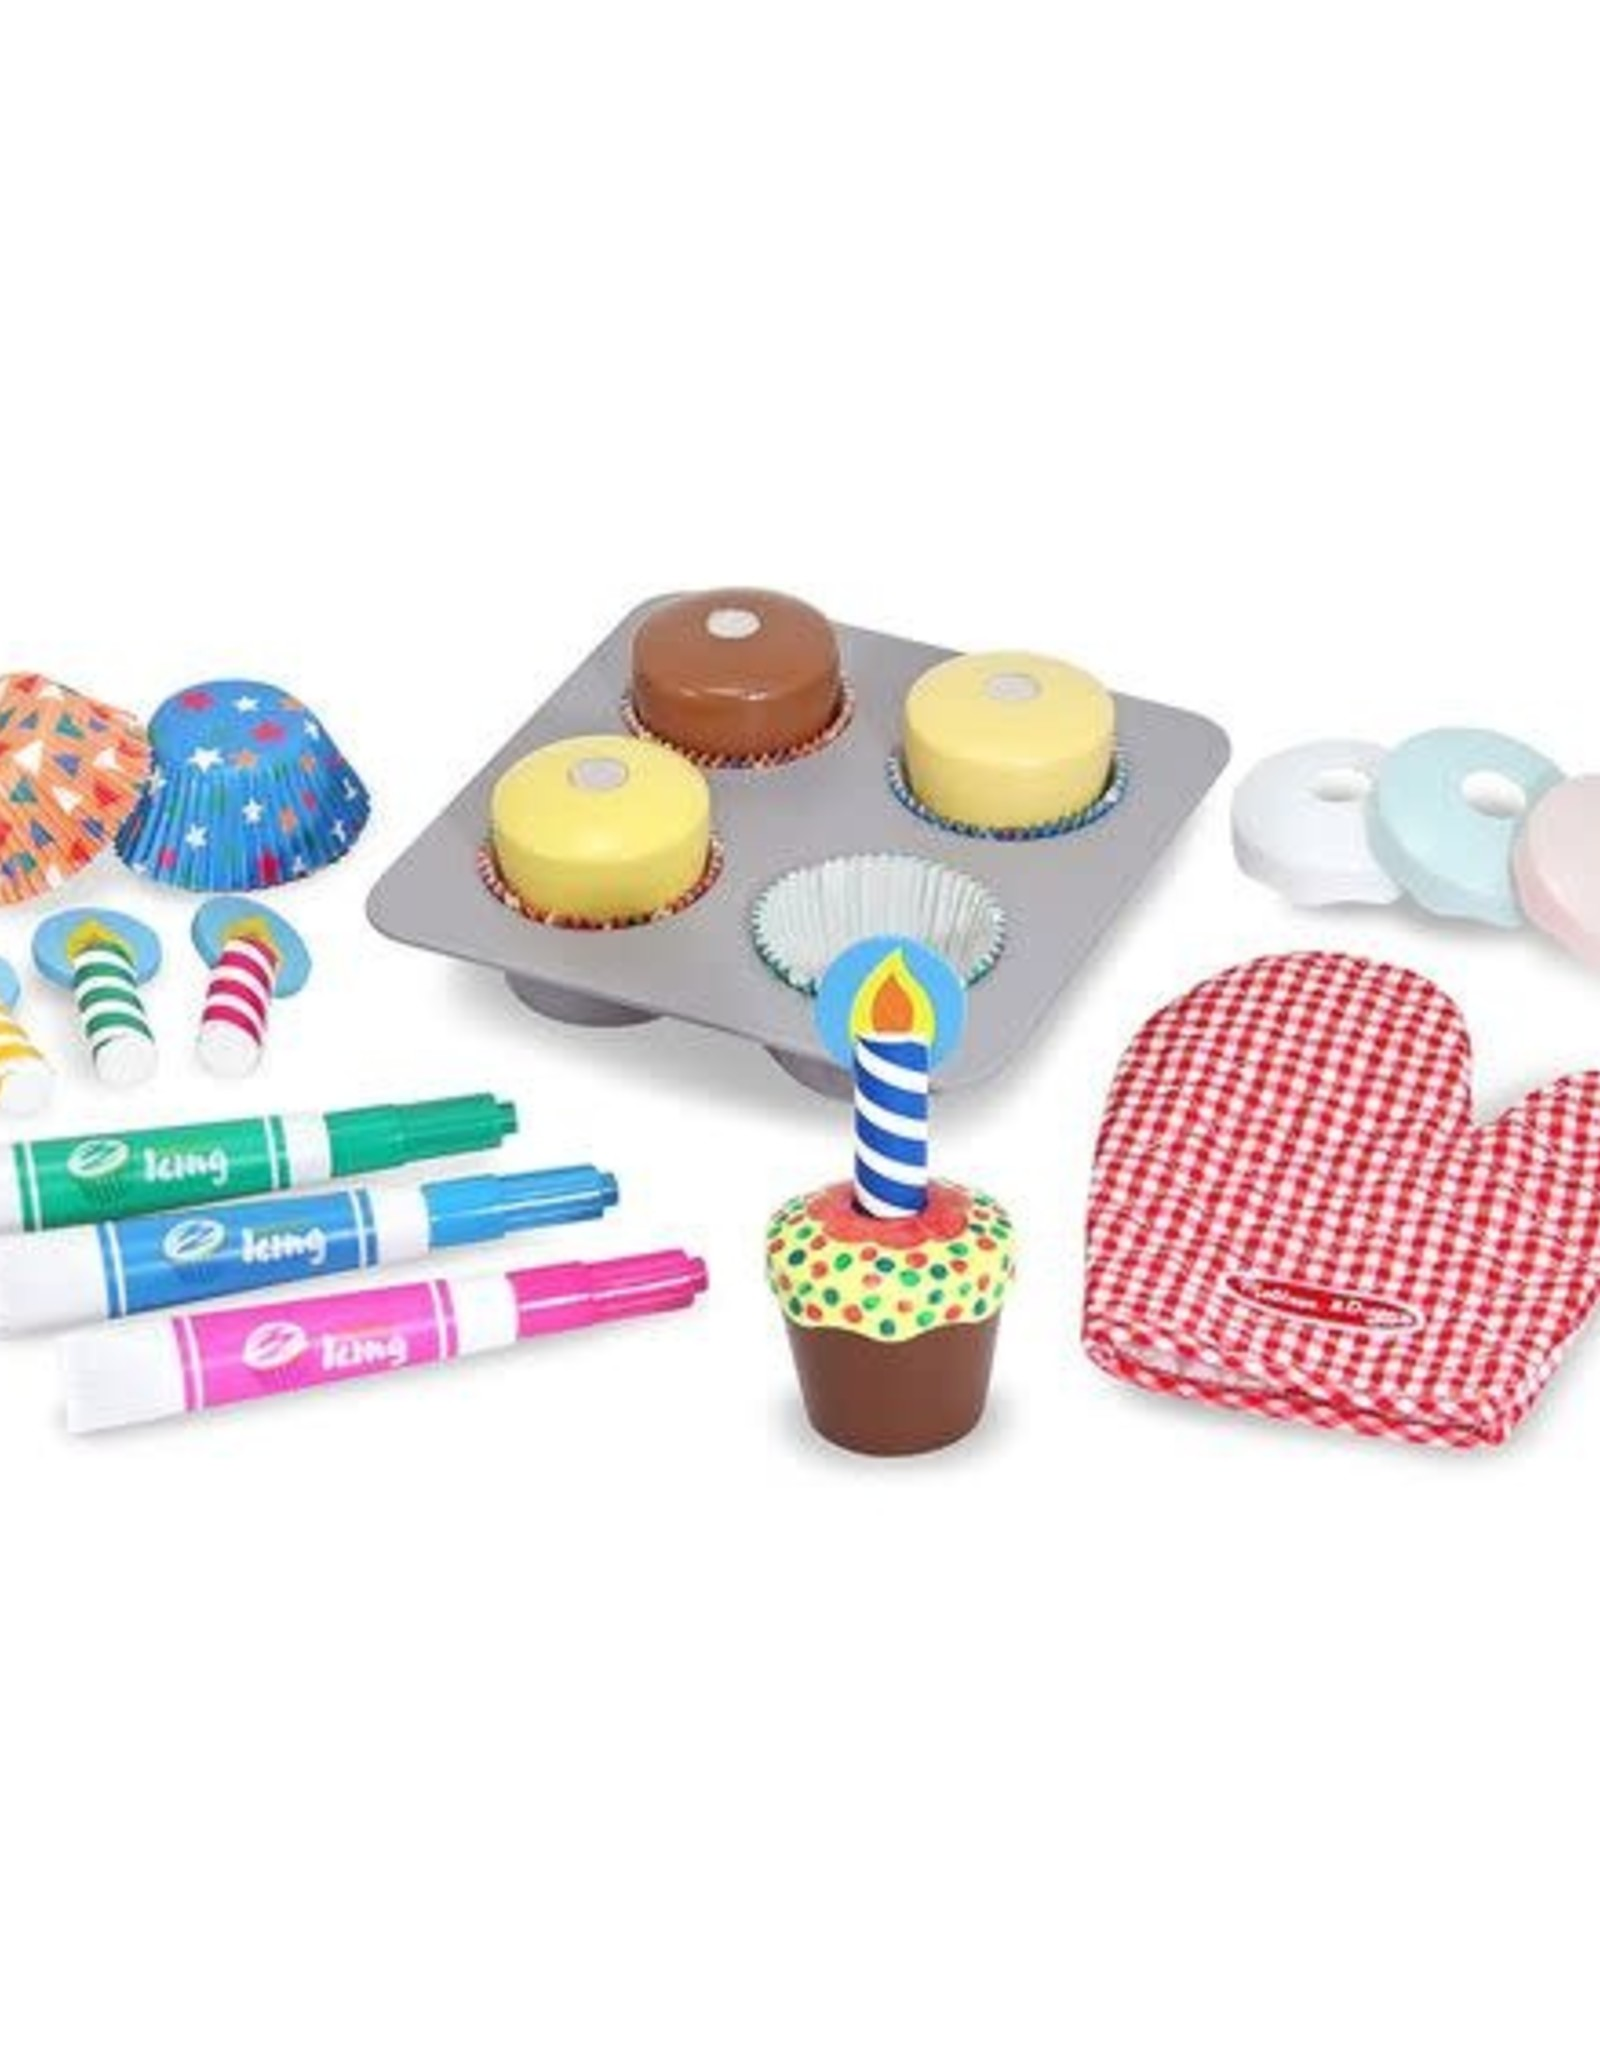 Melissa & Doug MD Bake & Decorate Cupcake Set